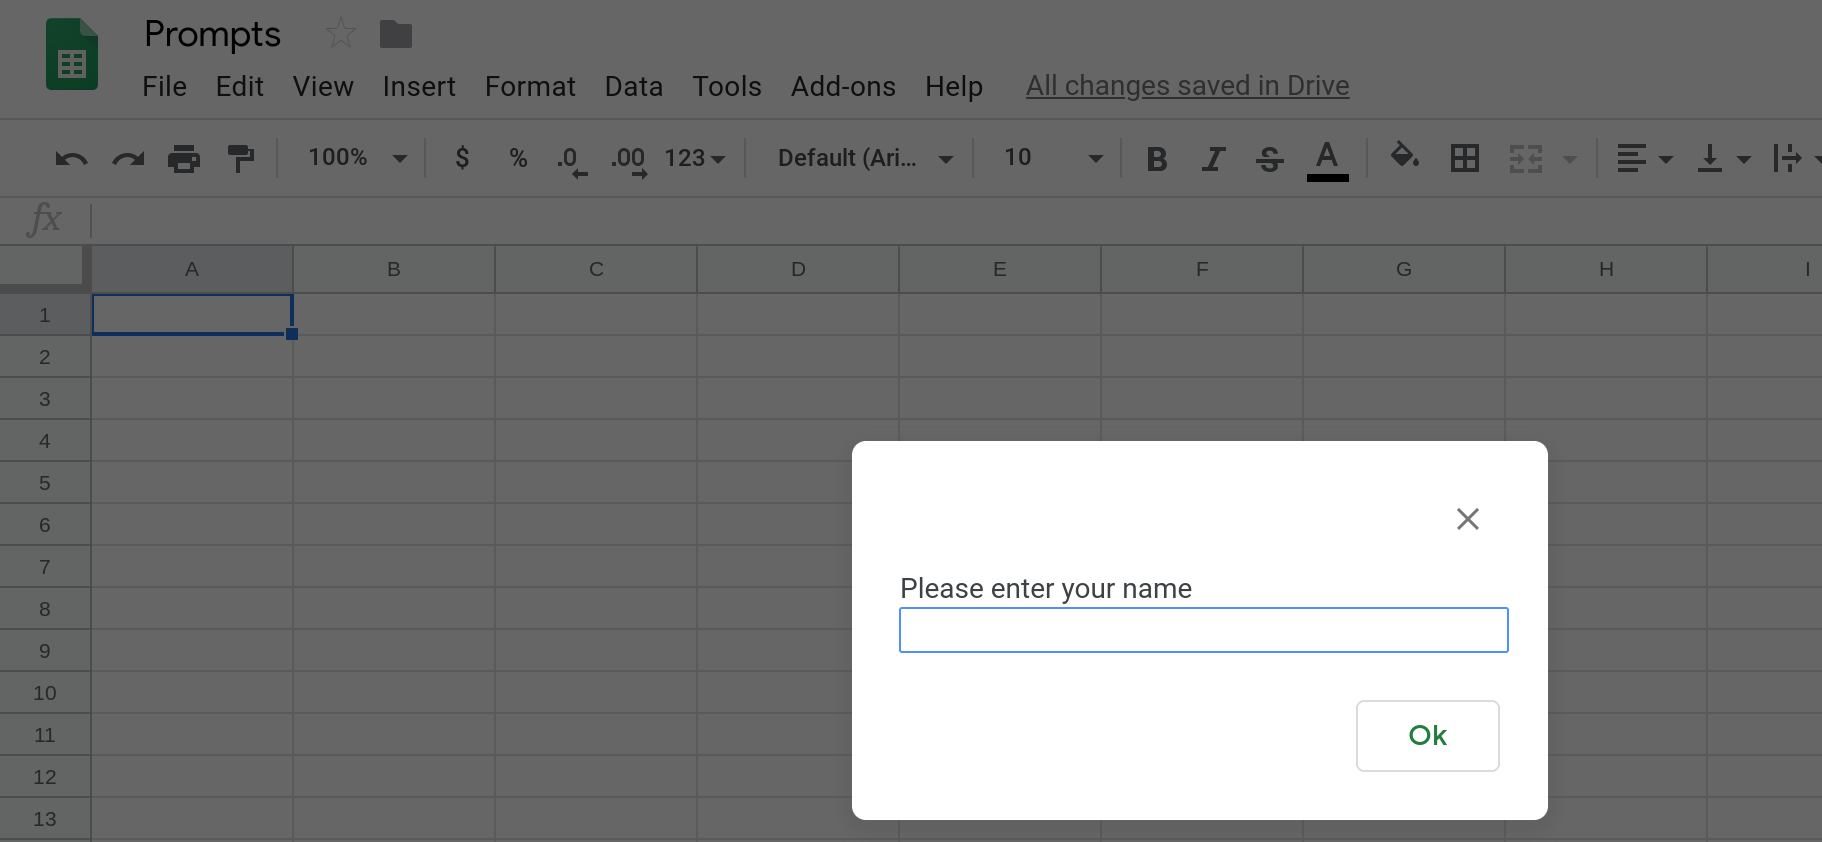 Screenshot of a Google Sheets spreadsheet displaying a prompt that is asking the user to enter their name.